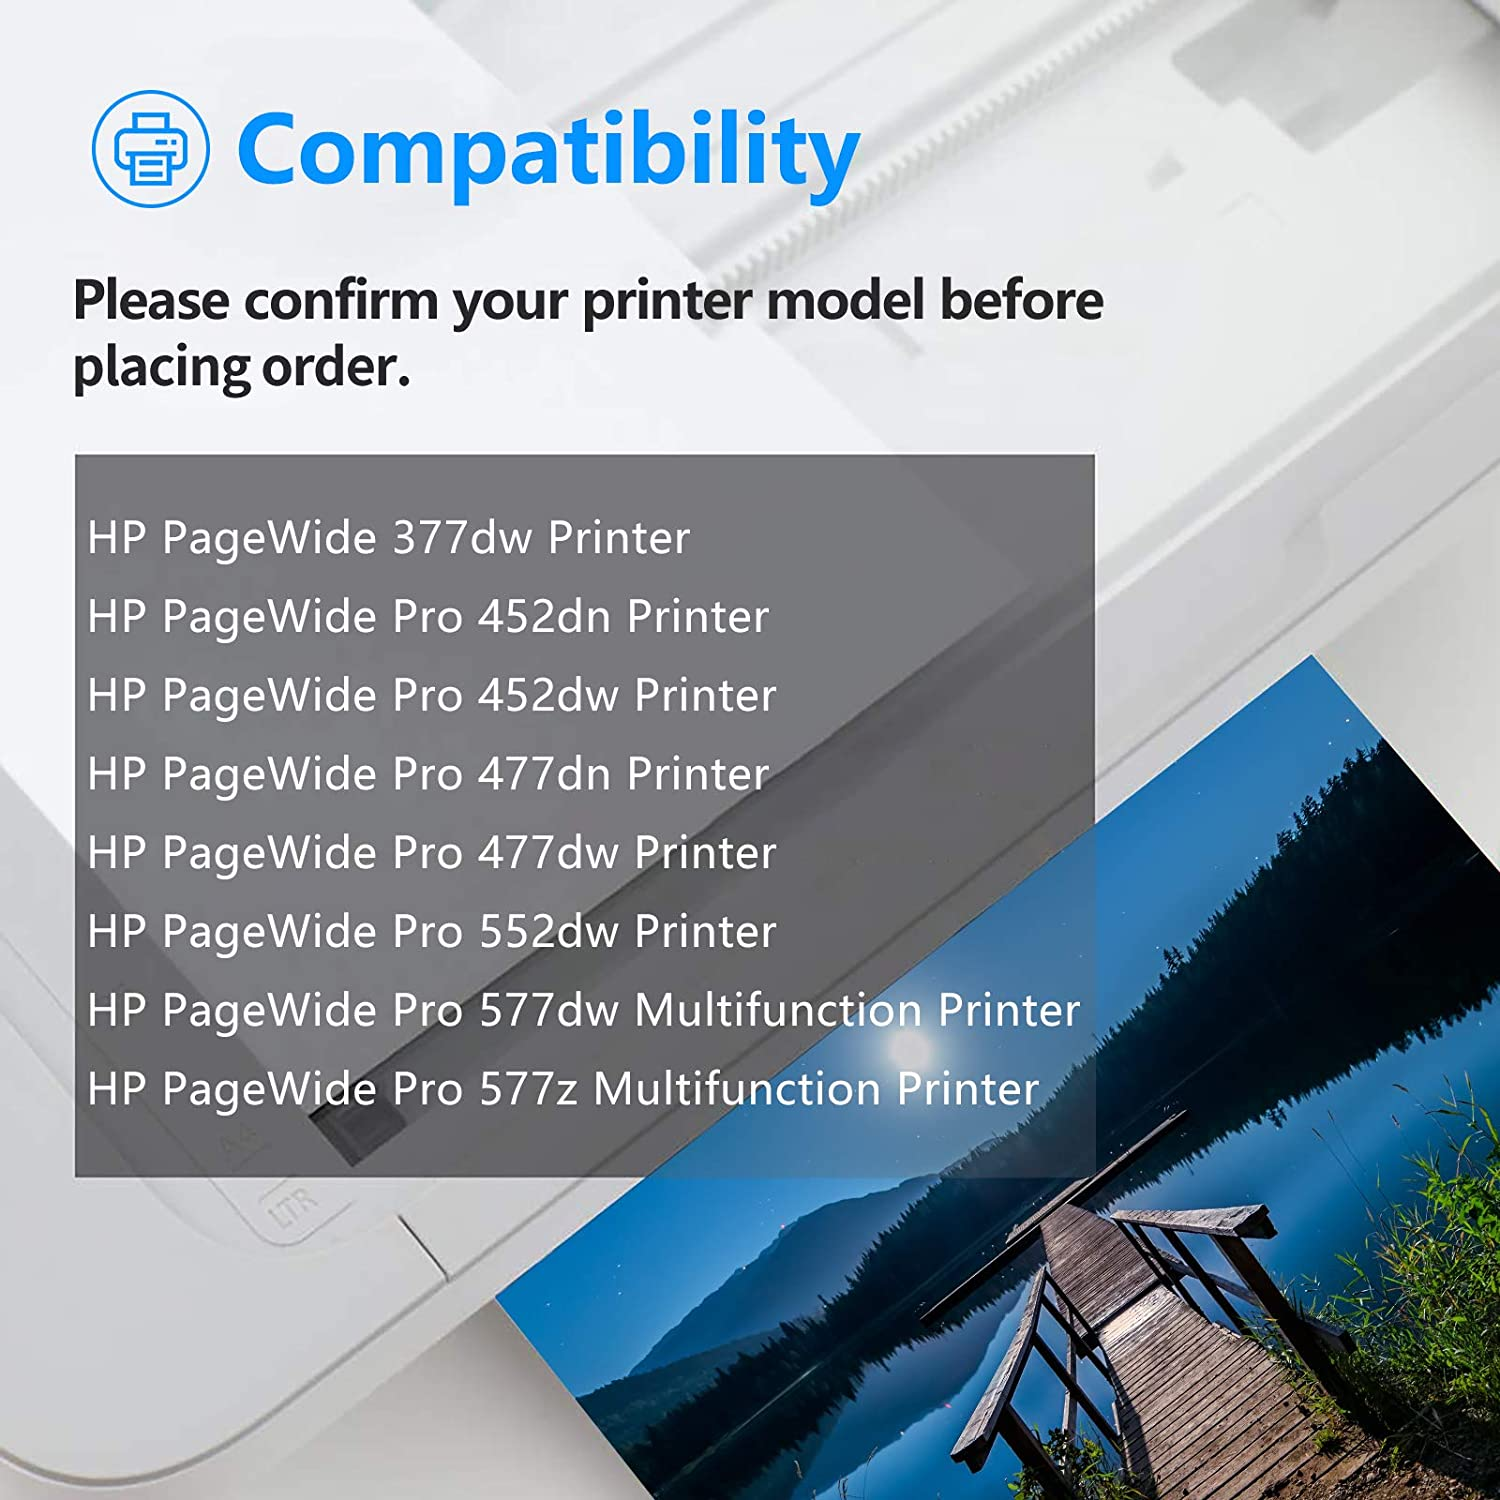 452dw 5 Pack 577z Printer for HP Page Wide 377dw Printer 477dn GREENCYCLE Re-Manufactured 972 972A Cyan Ink Cartridge Replacement Compatible for HP PageWide Pro 452dn 477dw 577dw 552dw